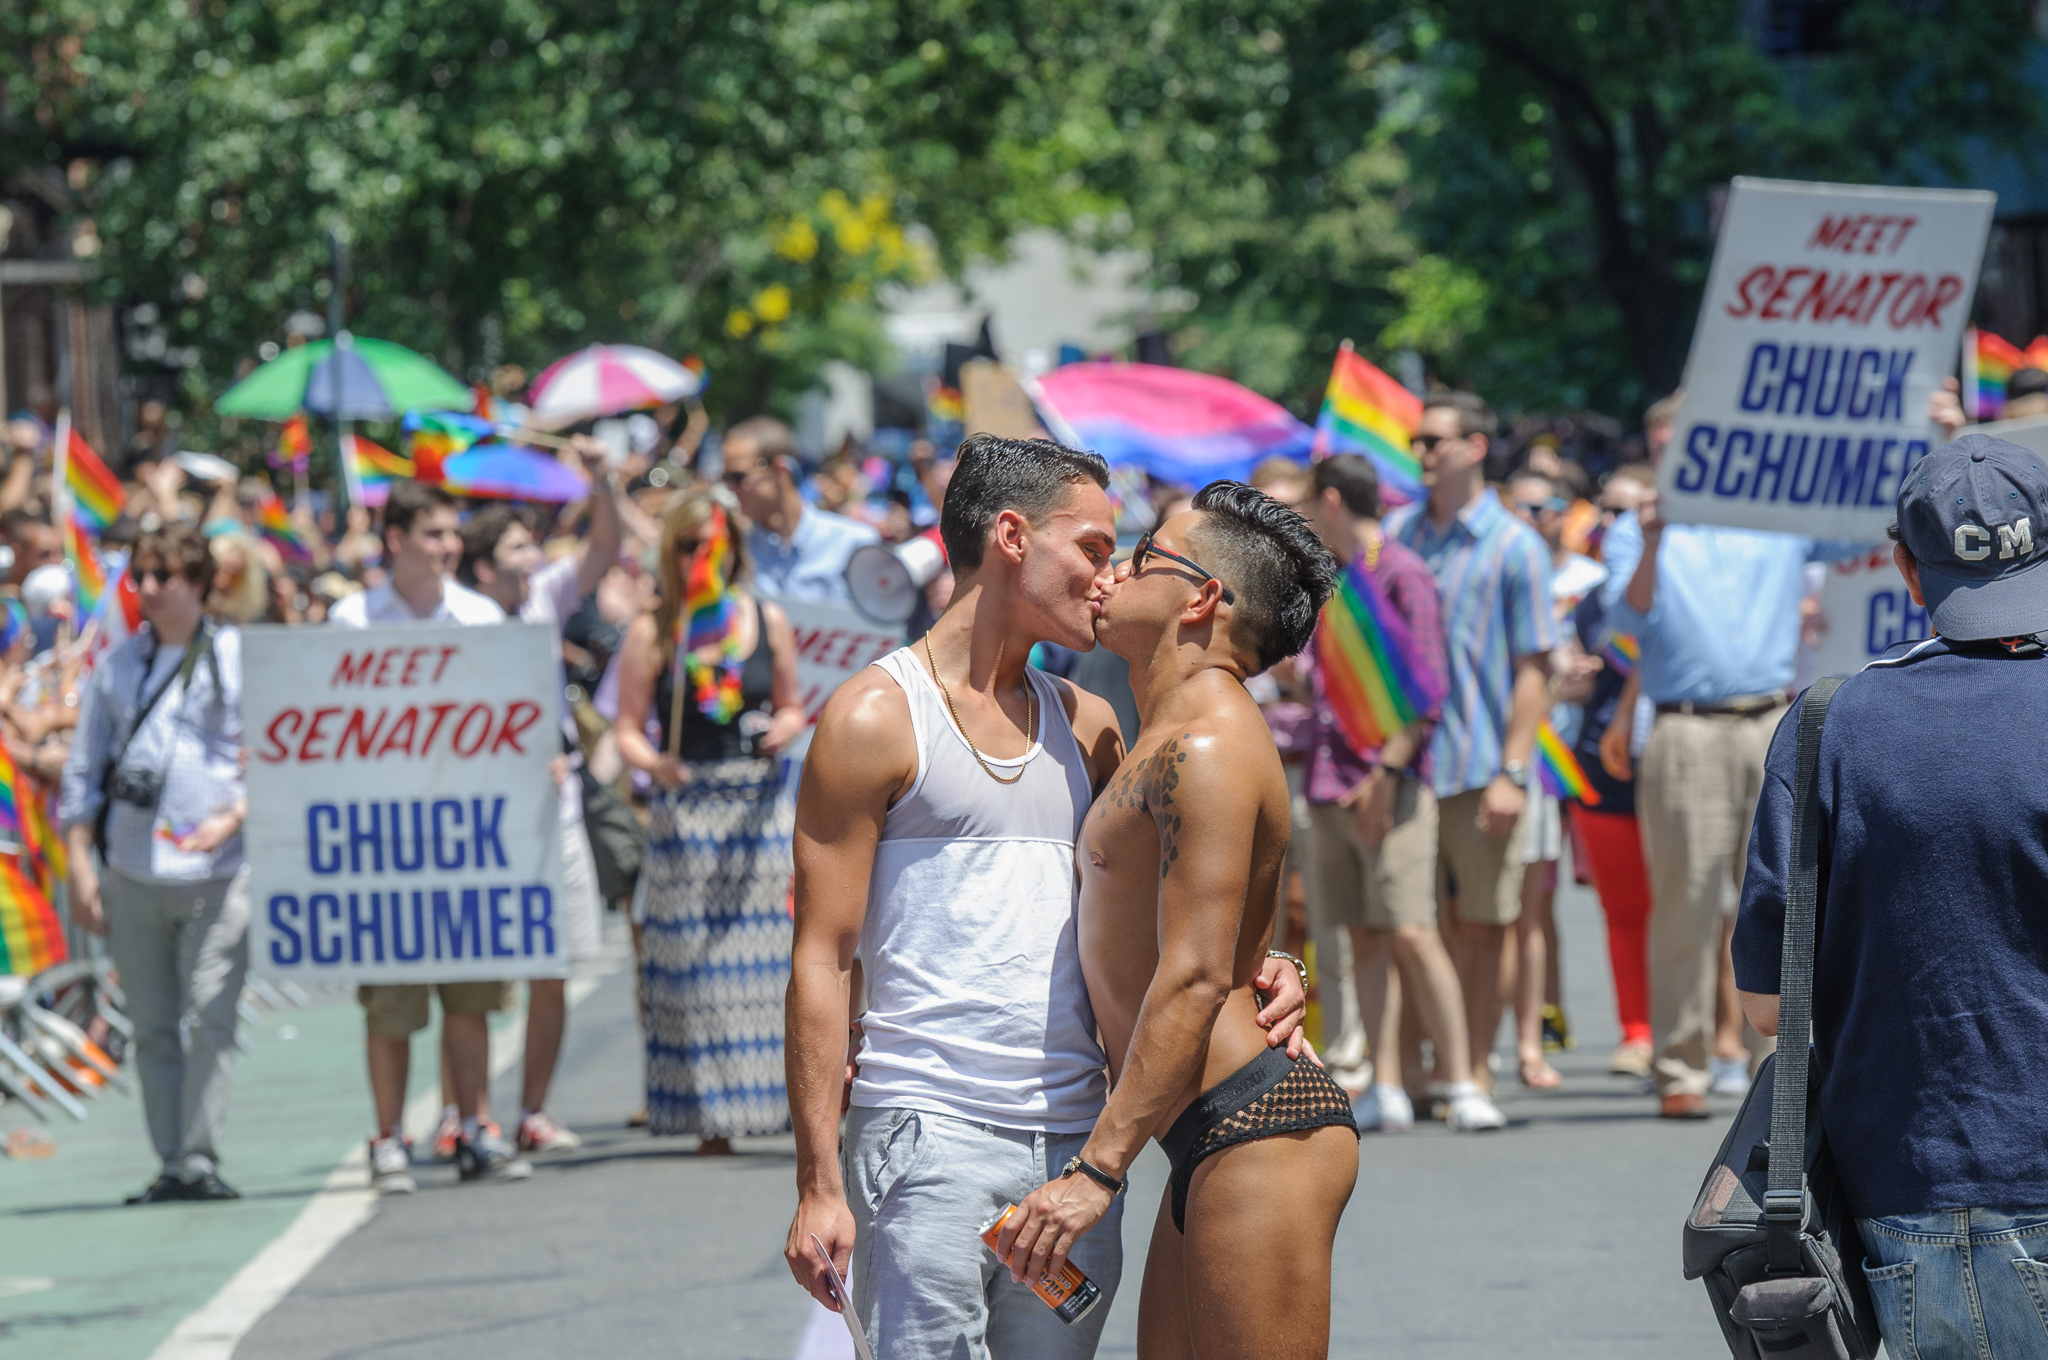 Gay Pride events in NYC